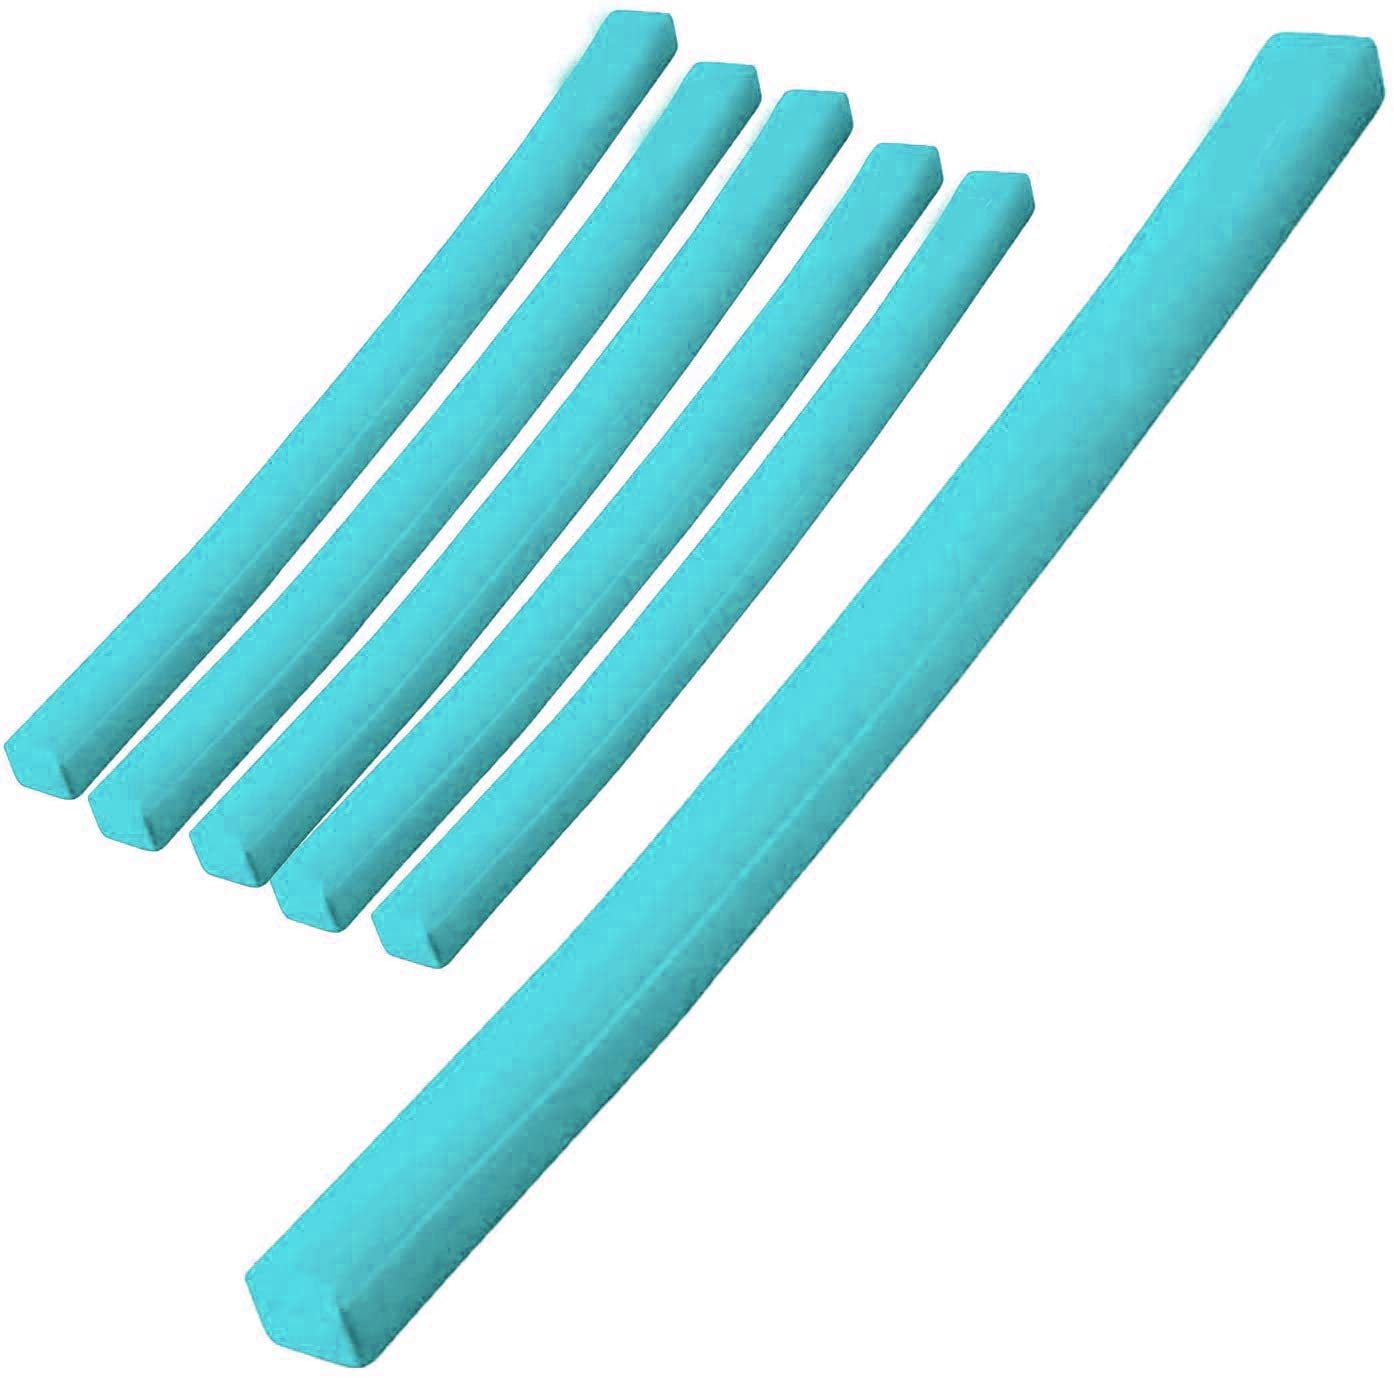 Vos Lazy Floats Soft Swimming Pool Noodle Premium Pool Float Summer Beach Fun Toy (6, Barrier Blue)